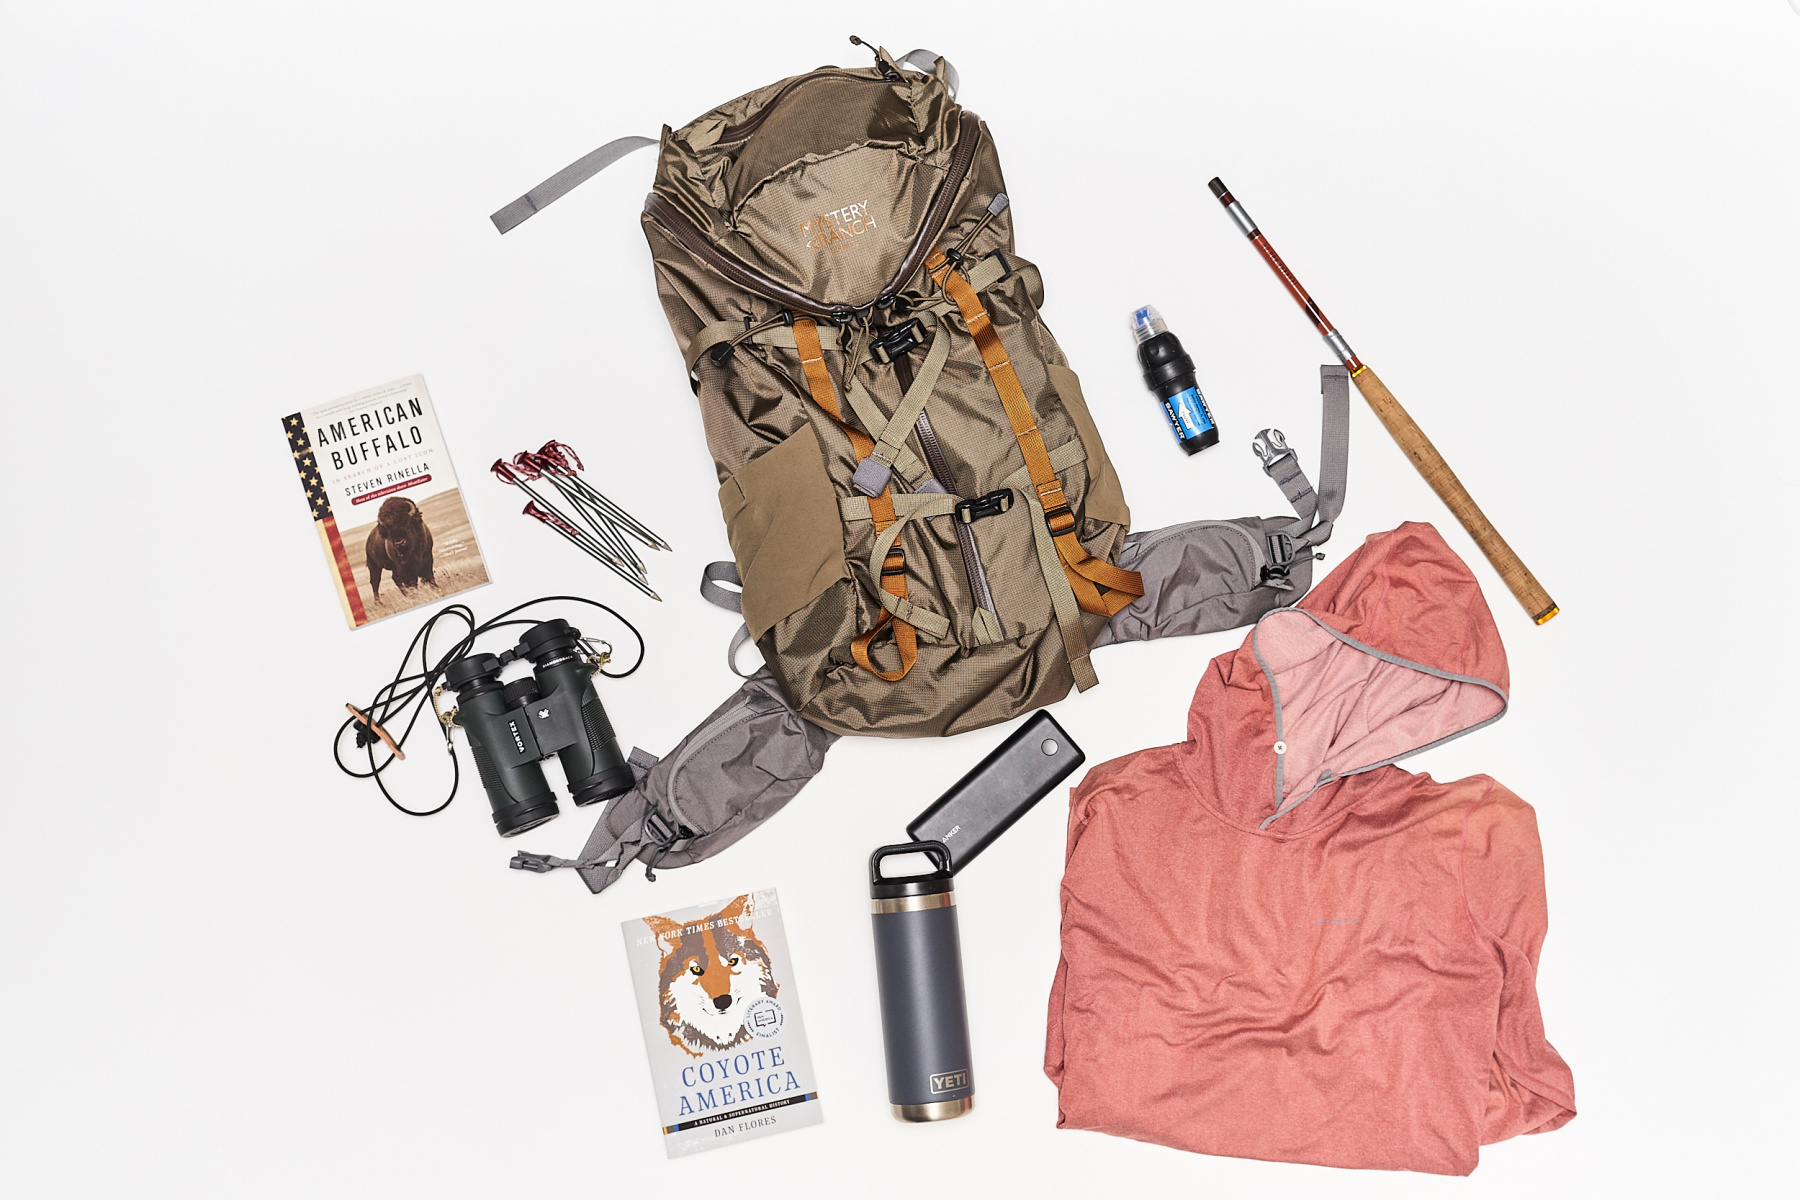 Father's Day Gift Ideas for Outdoorsmen - Gifts for Hunters, Fishers, Hikers